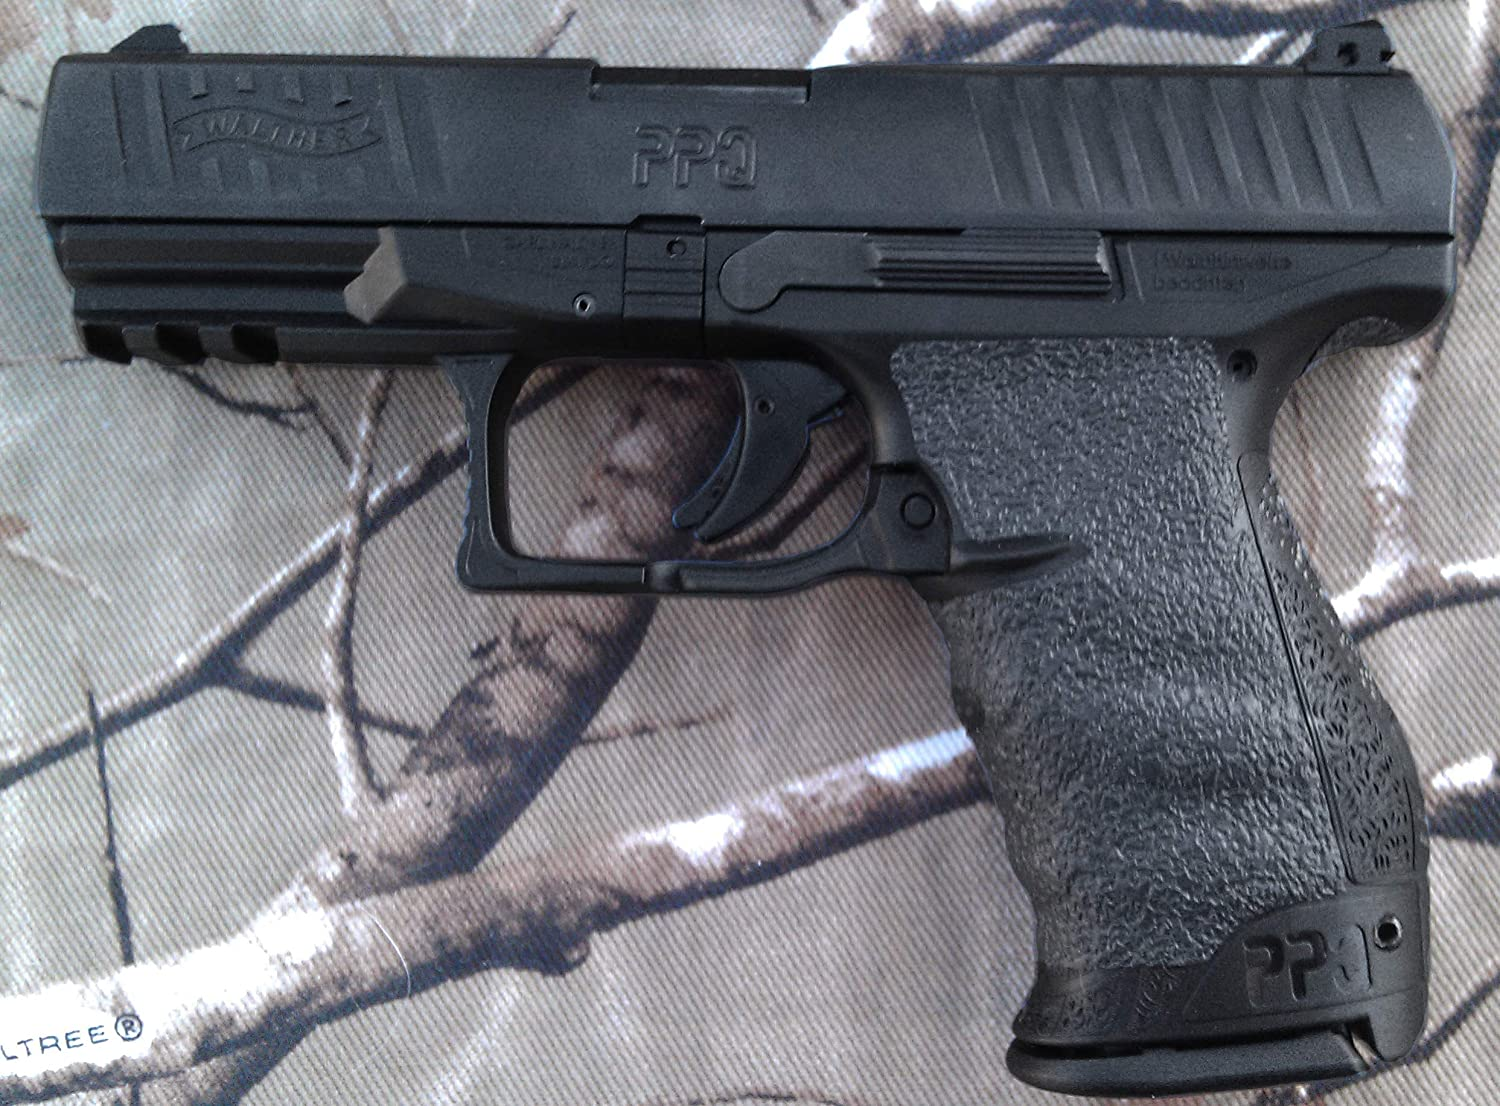 Tractiongrips Rubber Grip Tape Overlay for Walther PPQ